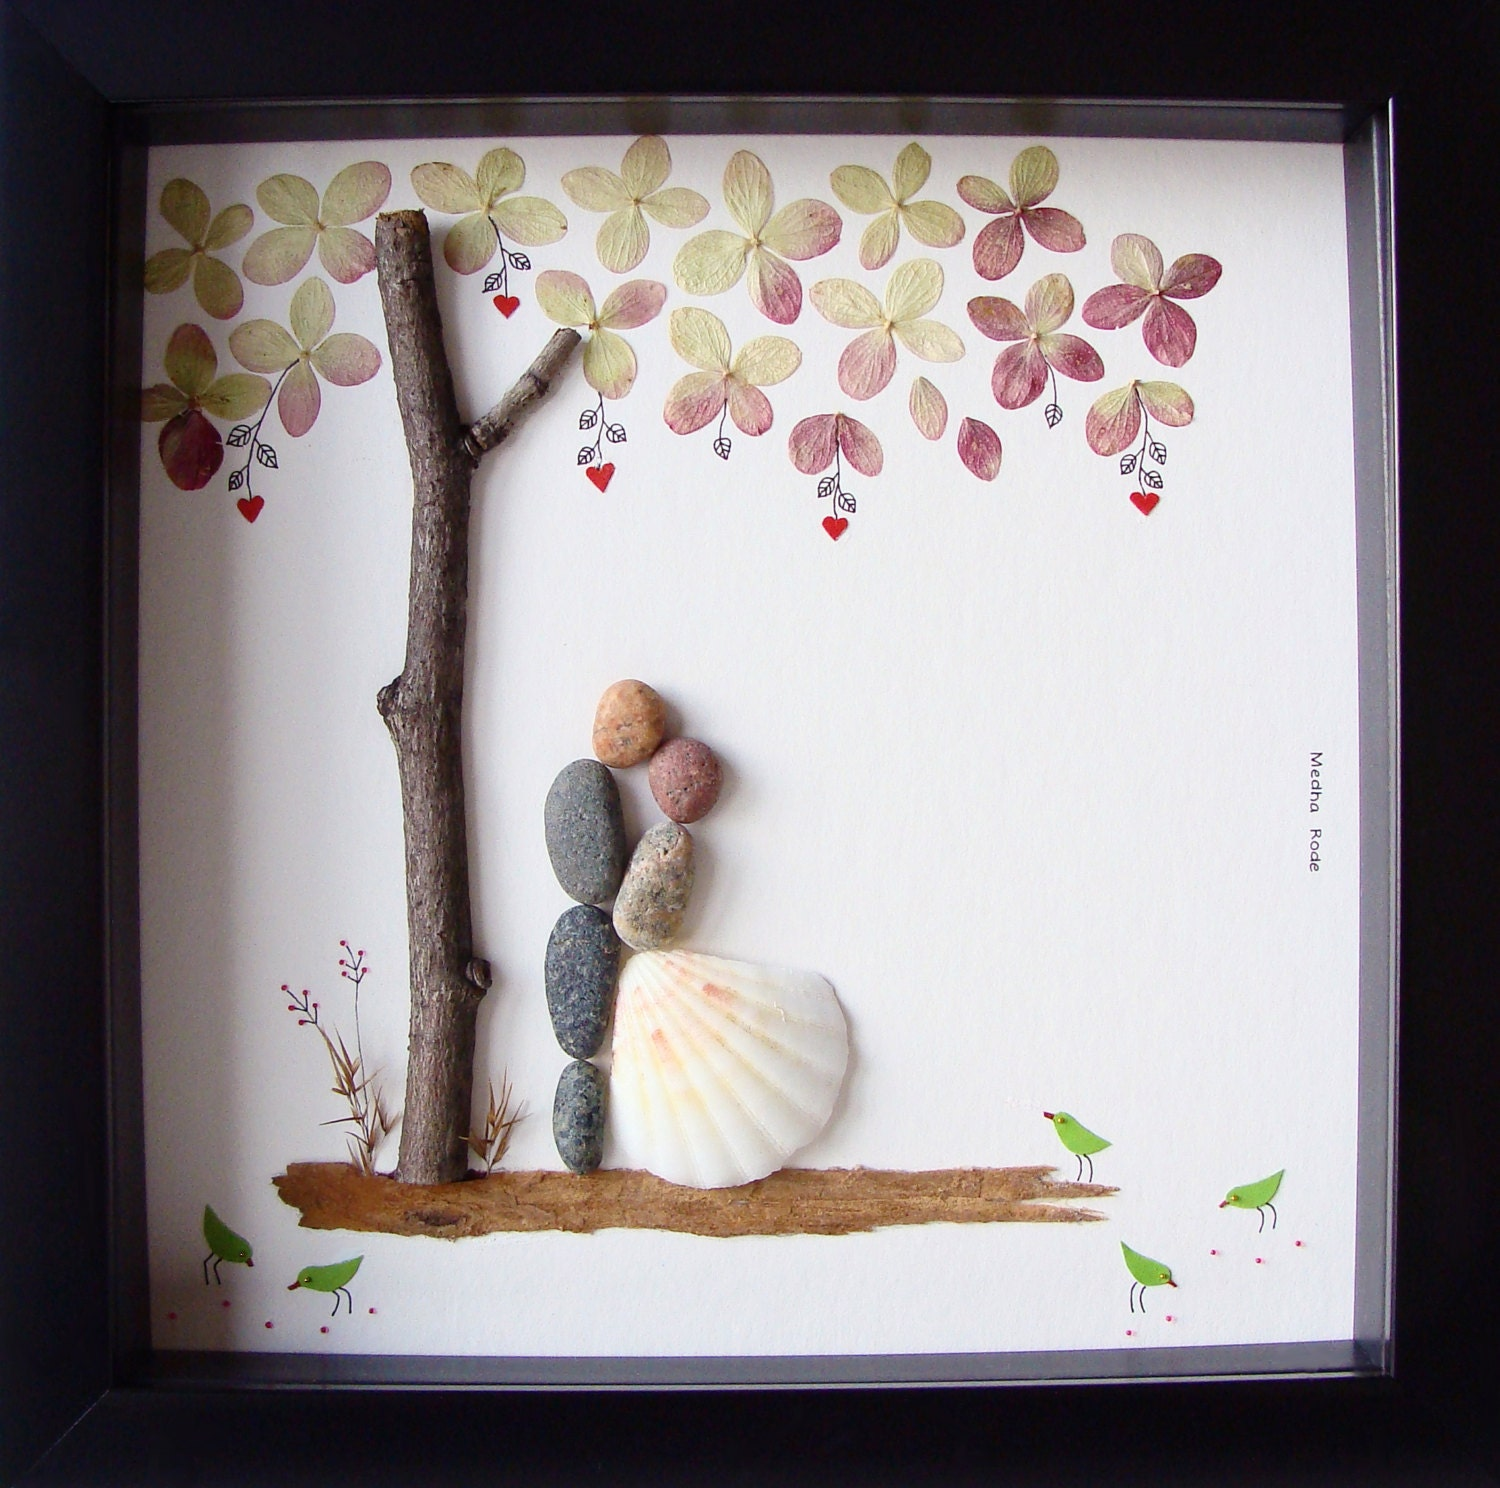 Ideas For Wedding Gift: Unique Wedding Gift For Couple Wedding Pebble Art By MedhaRode